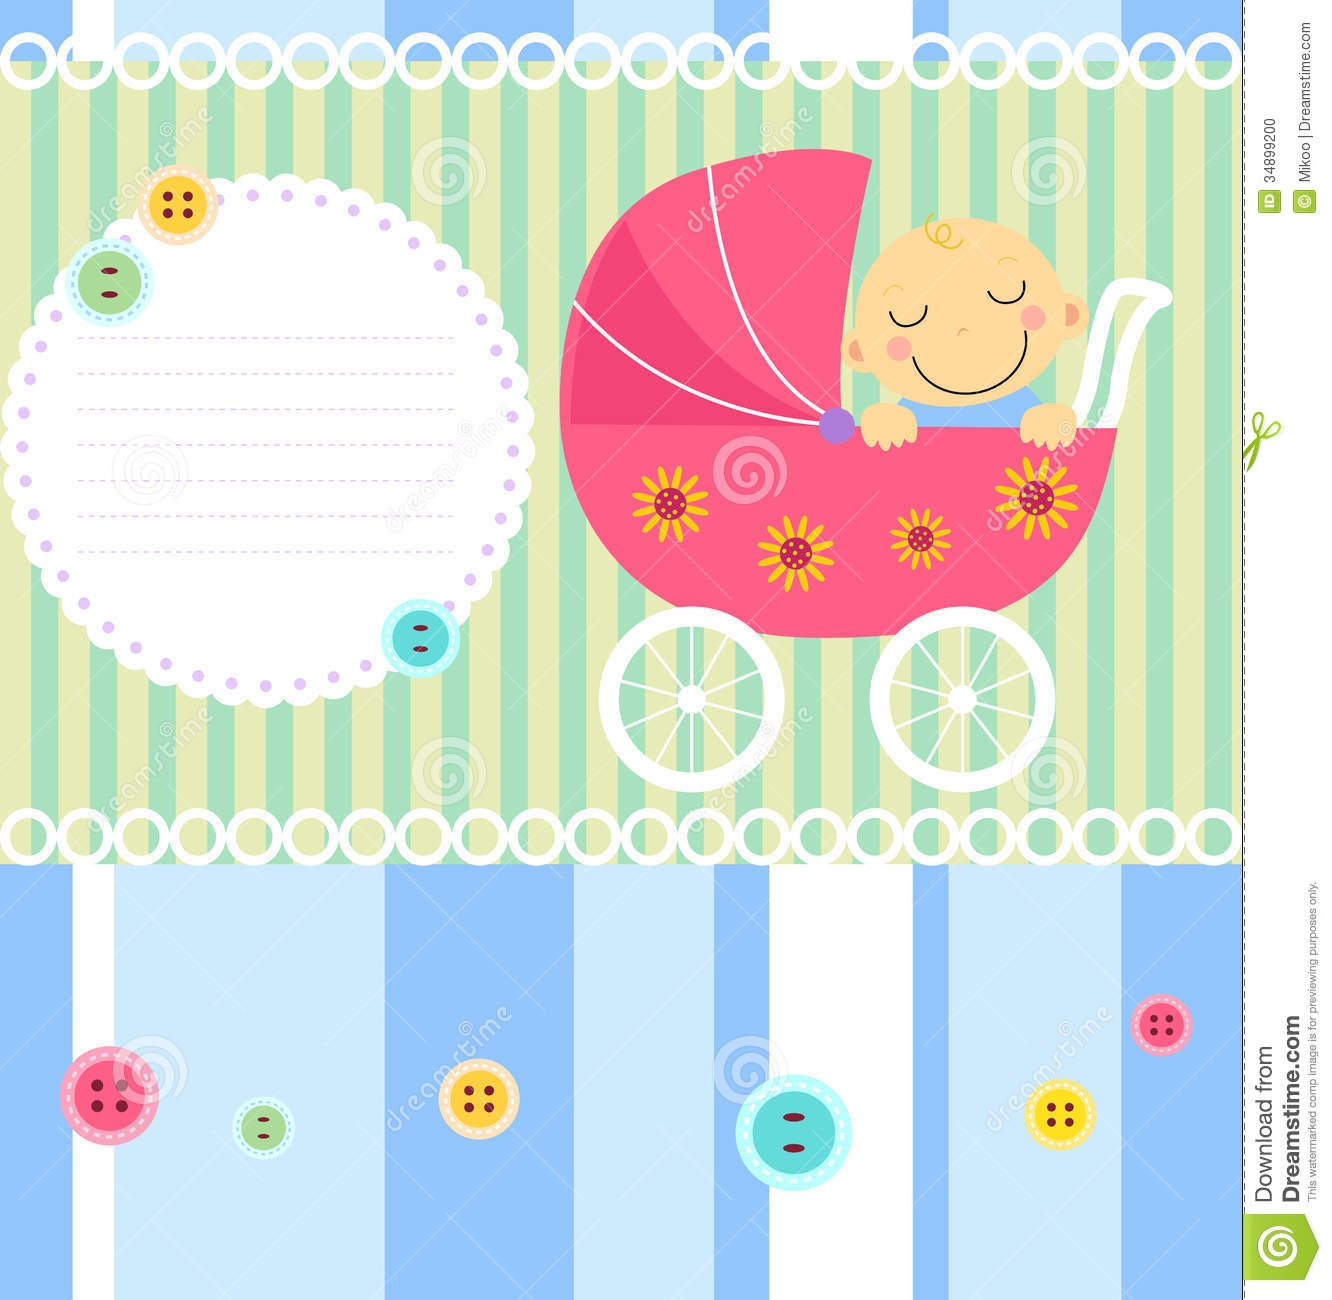 Baby Shower Cartoon Images ~ Baby shower card stock vector image of happy balloon